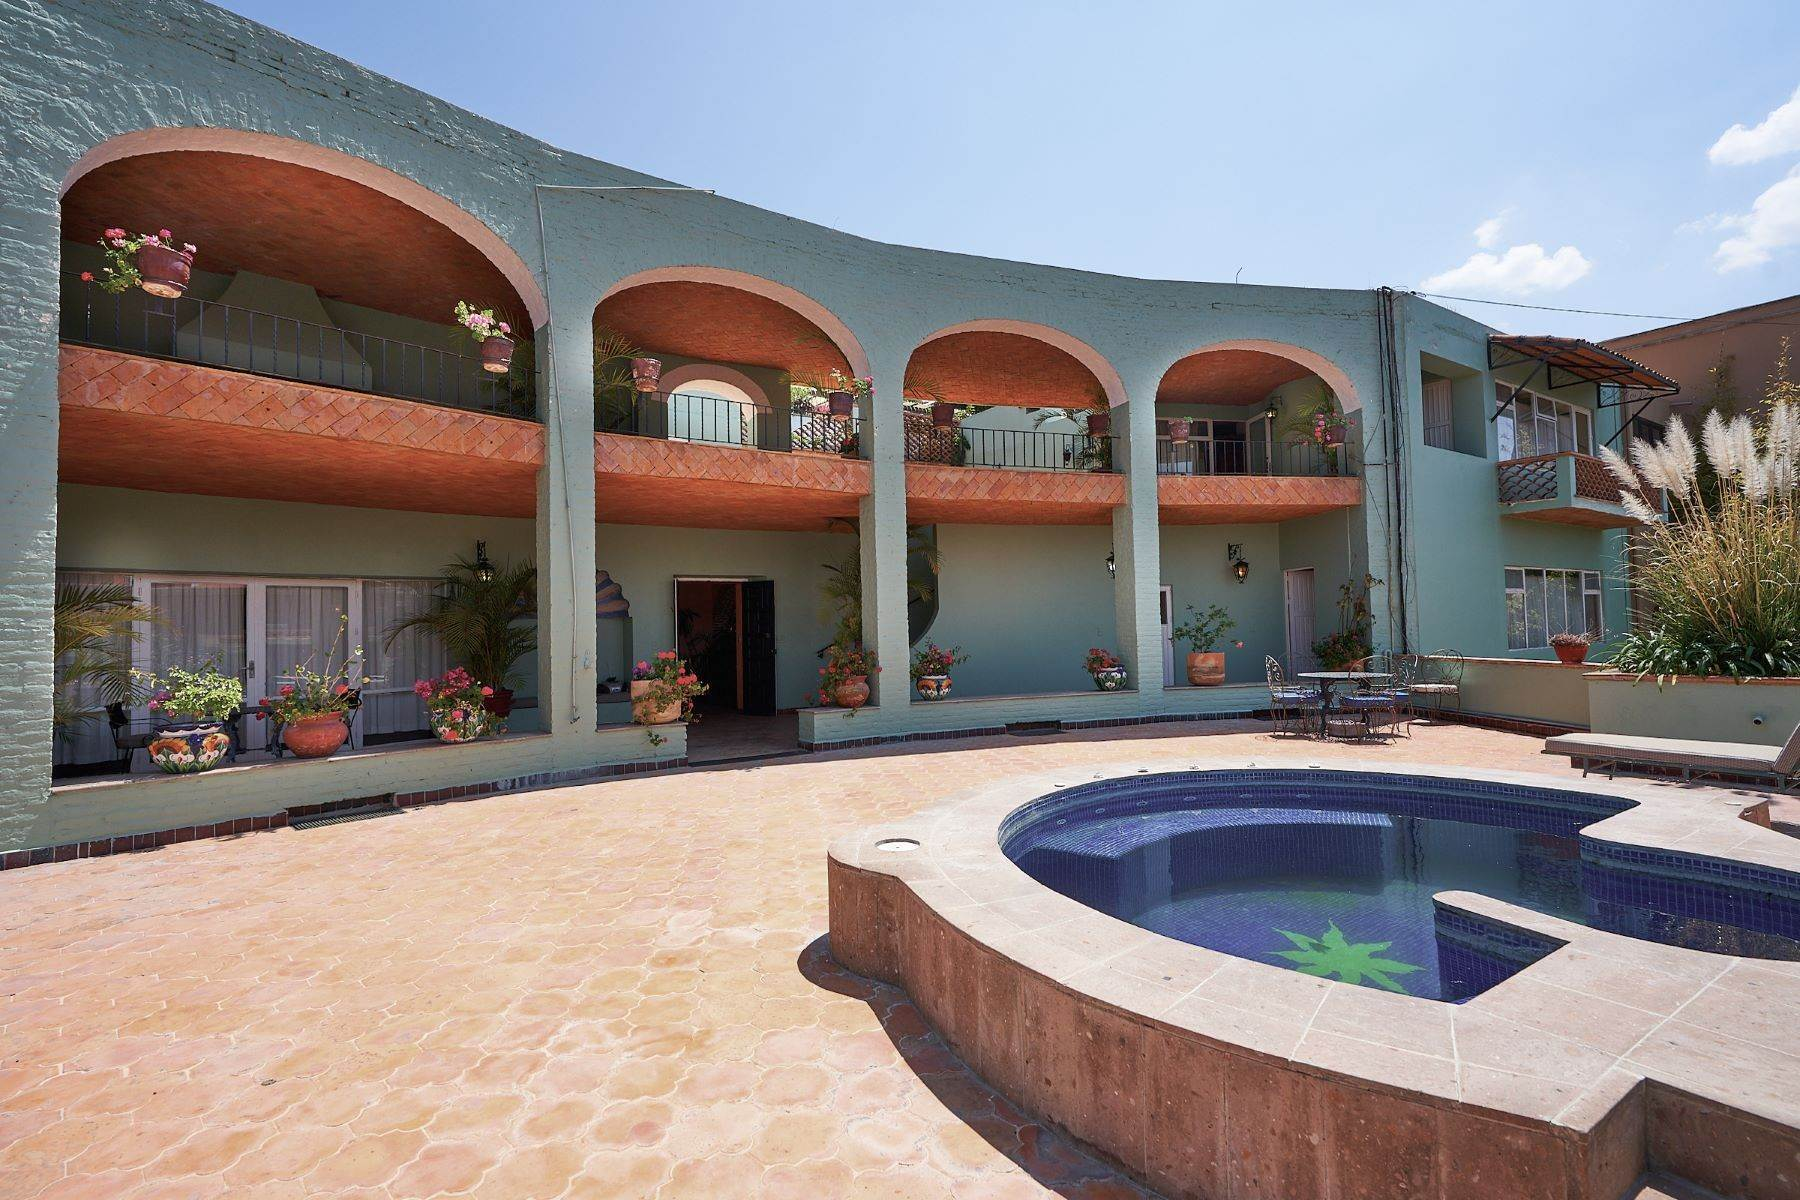 Single Family Homes for Sale at Faroles 10 San Miguel De Allende, Guanajuato 37740 Mexico